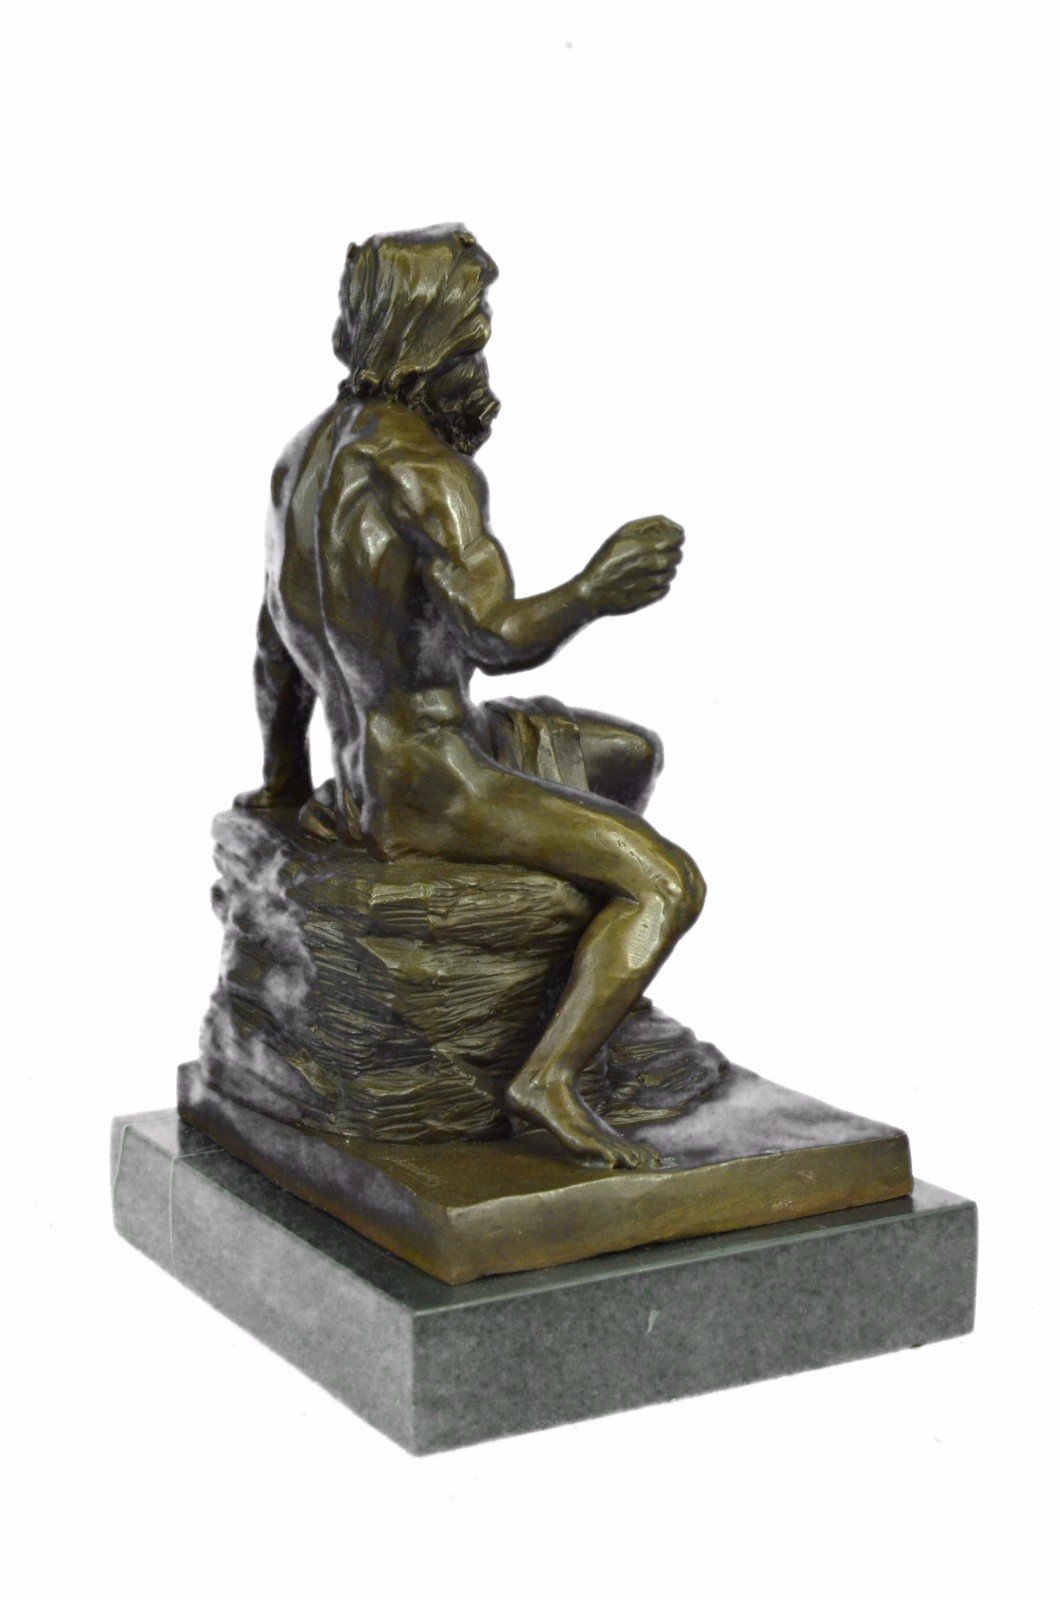 Bronze sculpture art deco greek sea god poseidon figurine sculpture ebay - Poseidon statue greece ...